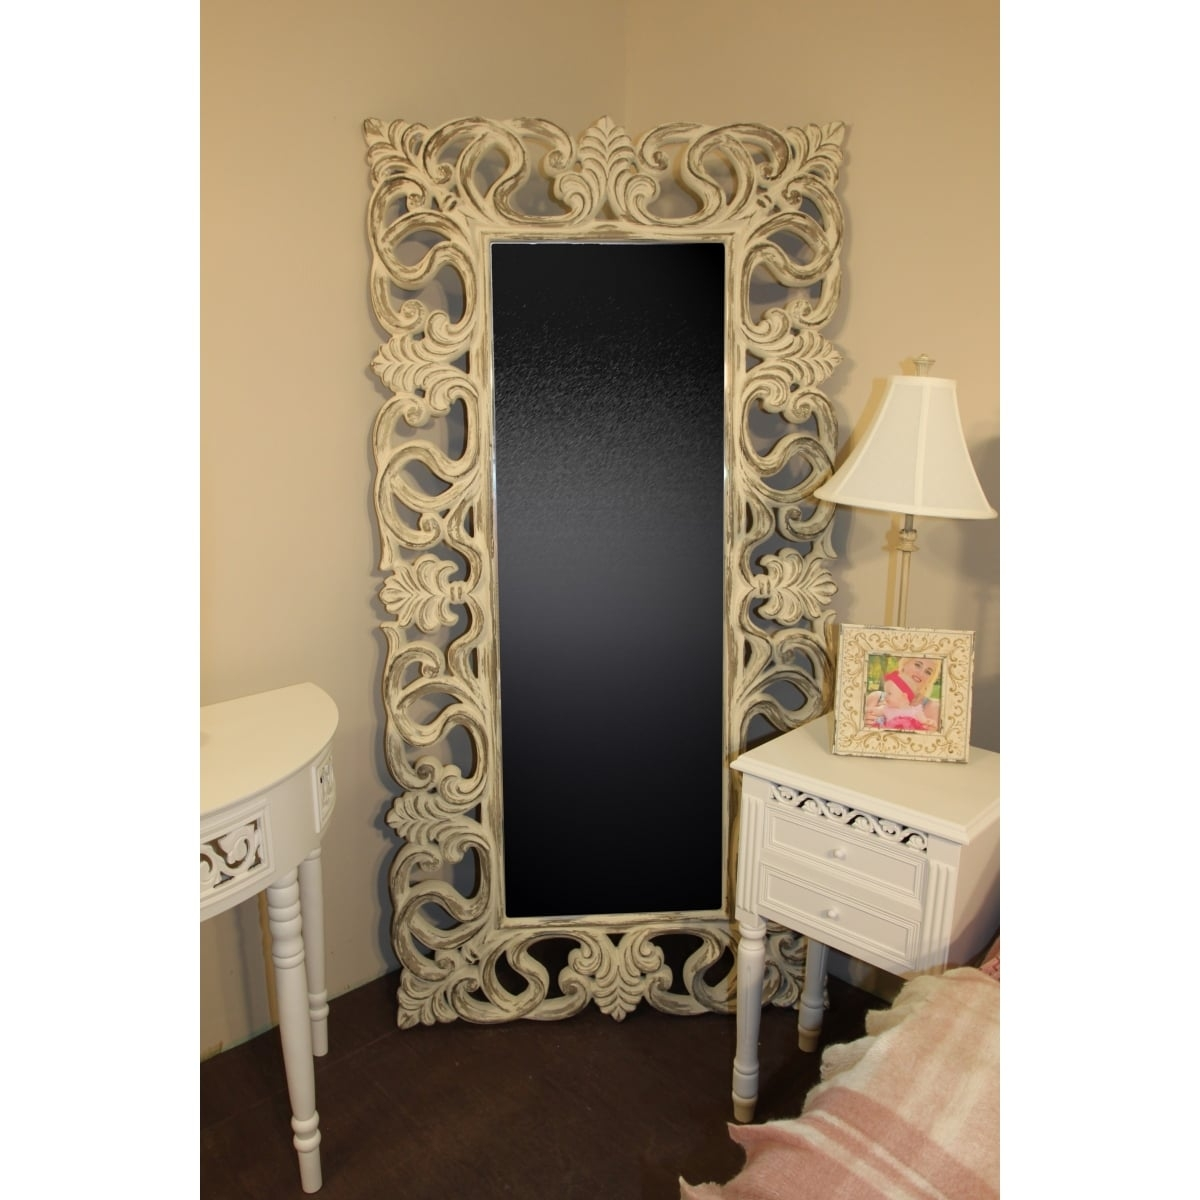 Full Length Mirror Shab Chic Swanky Interiors Within Cheap Shabby Chic Mirrors (View 9 of 15)